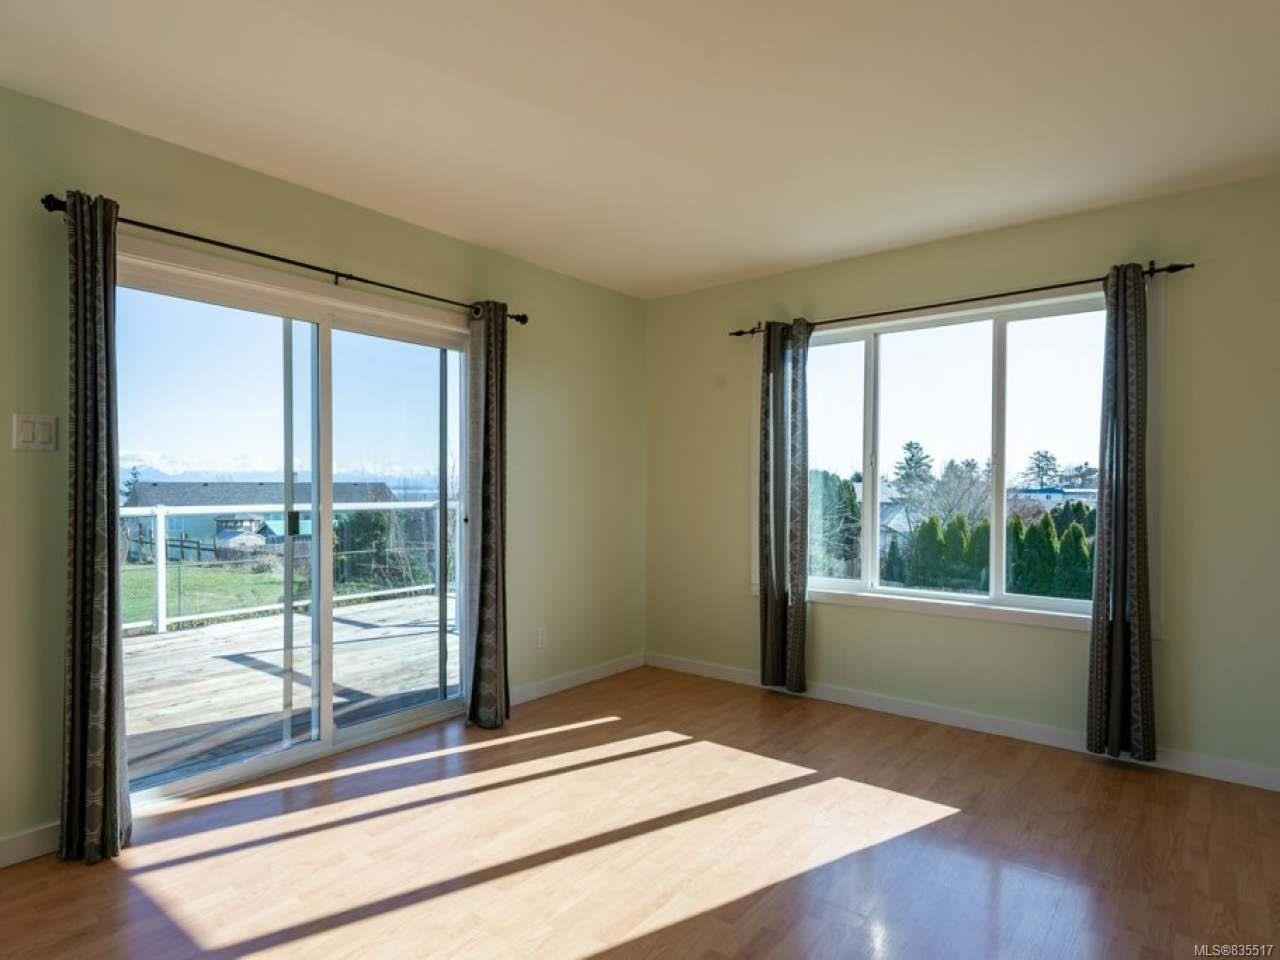 Photo 6: Photos: 109 Larwood Rd in CAMPBELL RIVER: CR Willow Point Single Family Detached for sale (Campbell River)  : MLS®# 835517